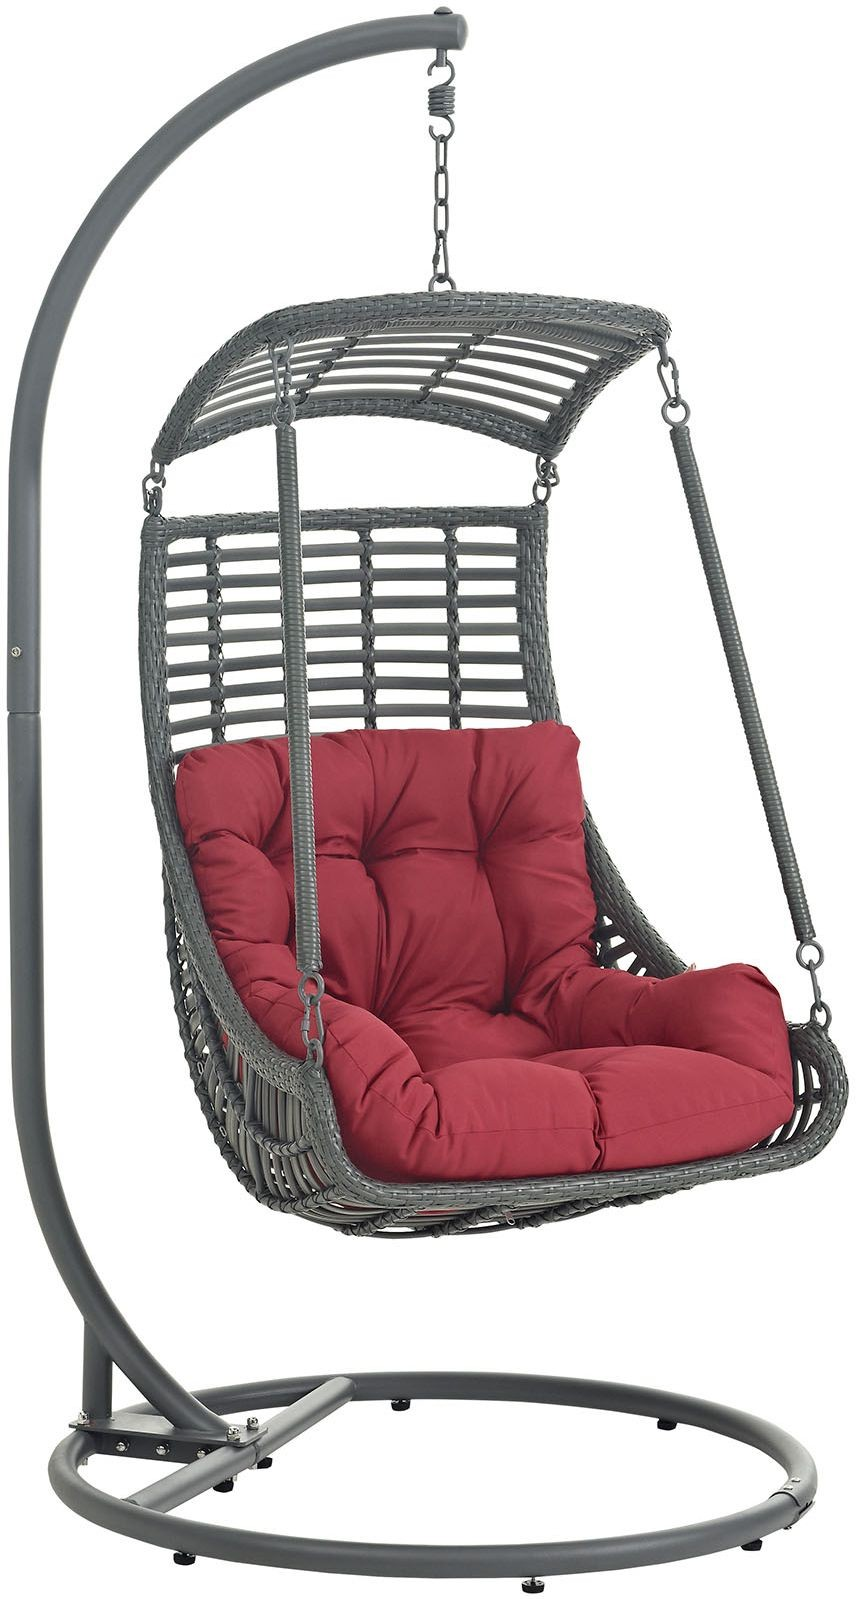 jungle red outdoor patio swing chair with stand eei 2274 red set renegade furniture. Black Bedroom Furniture Sets. Home Design Ideas